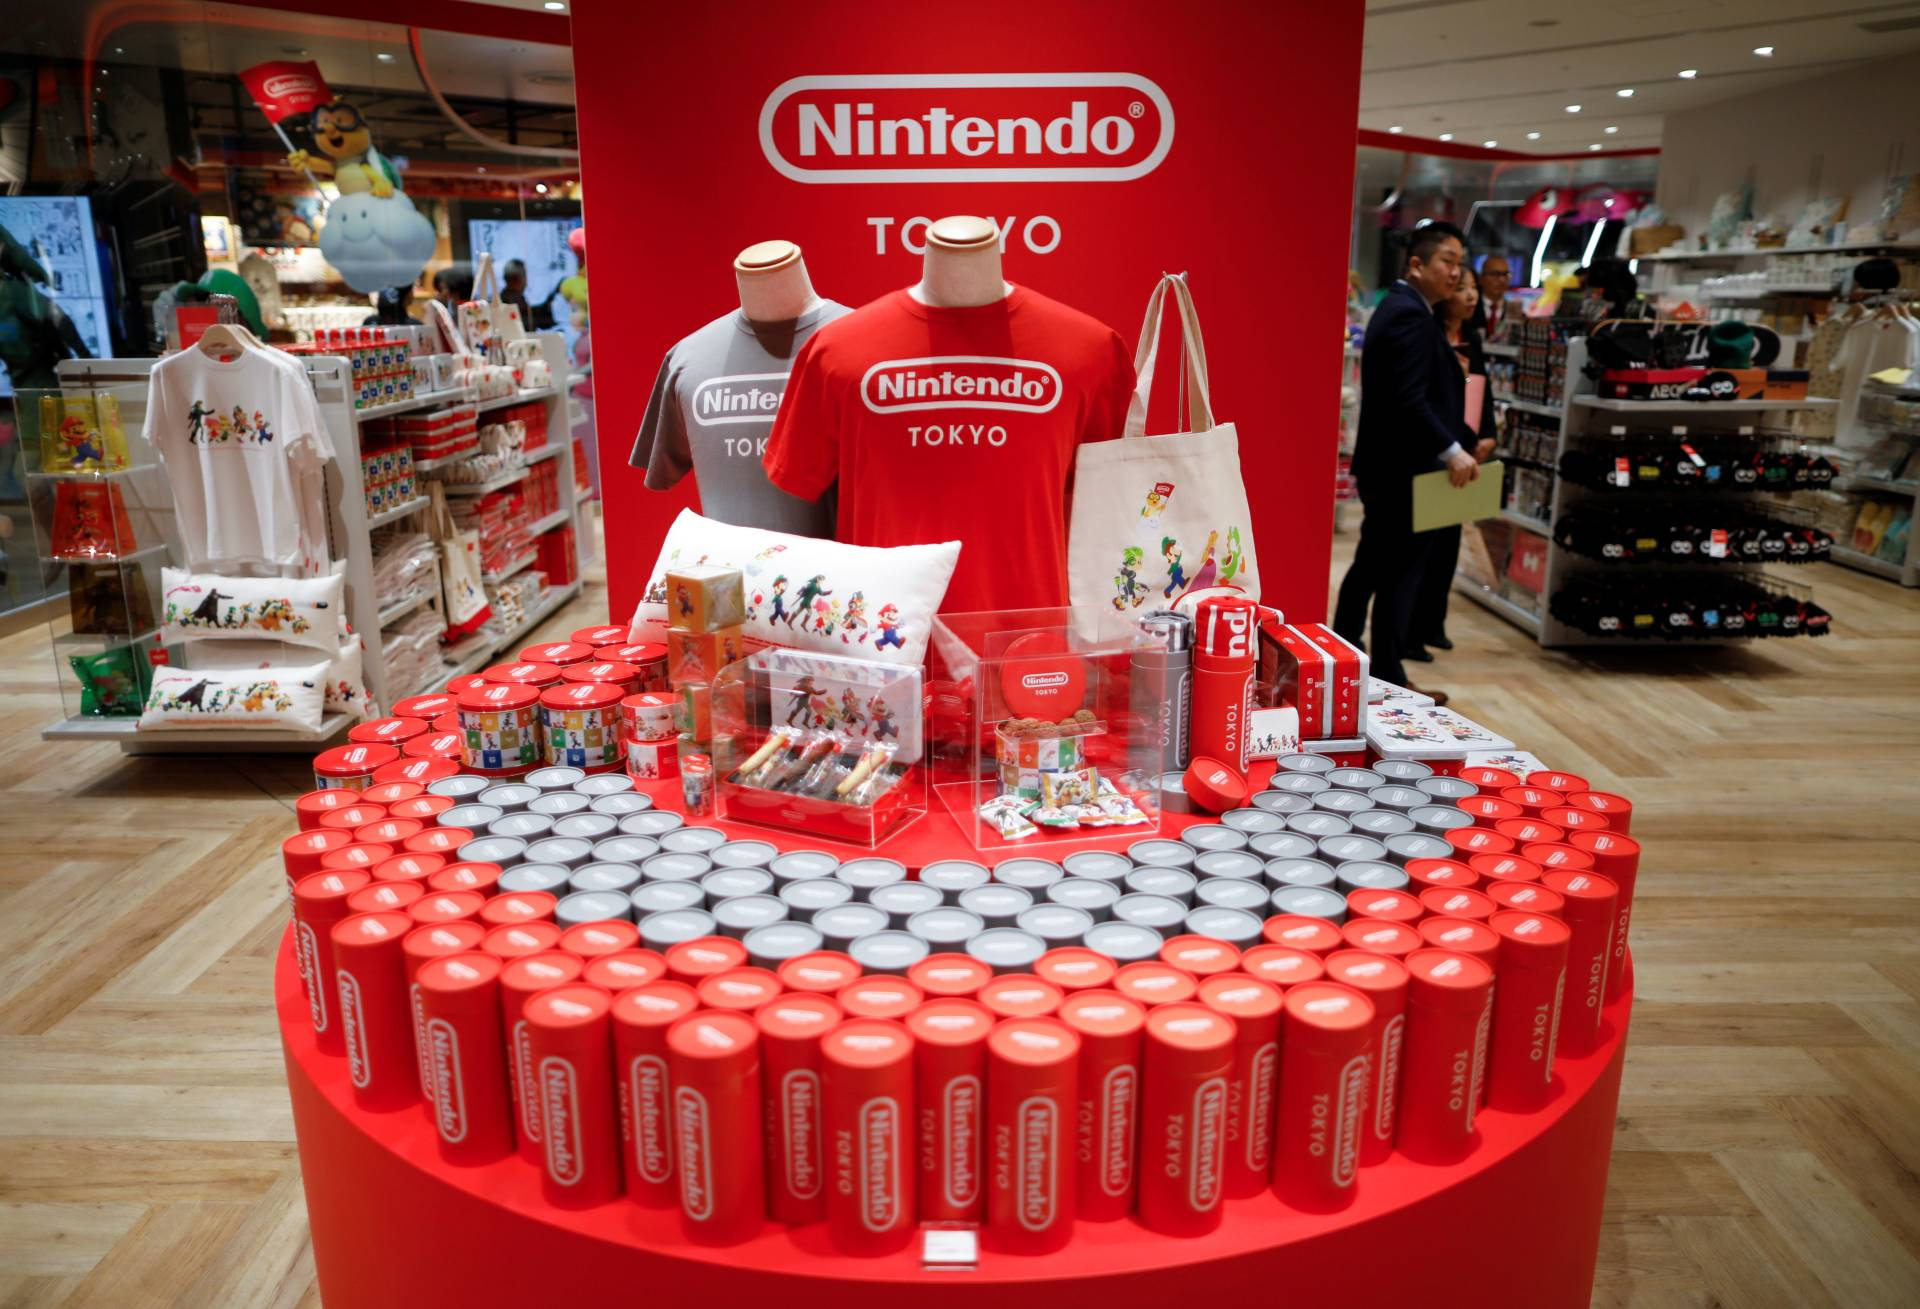 Nintendo's game character items and goods on display at Nintendo Tokyo, the first-ever Nintendo official store in Japan, at Shibuya Parco department store and shopping mall complex, in Tokyo, Japan. — Reuters